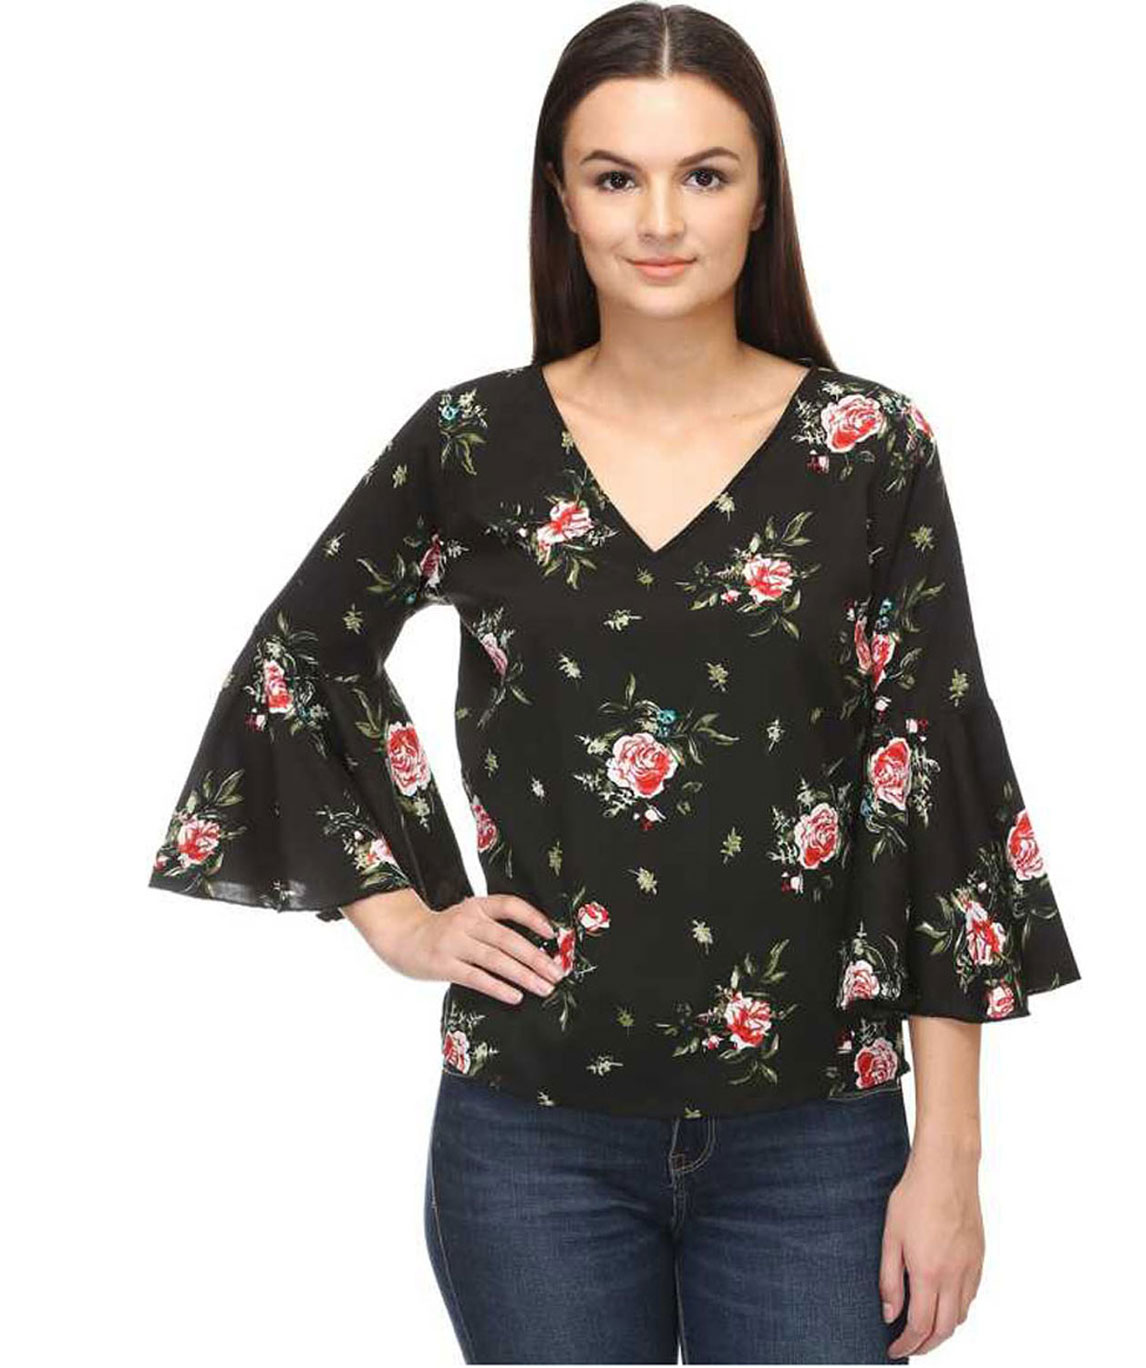 PARTY BELL SLEEVE FLORAL PRINT WOMEN BLACK, RED TOP